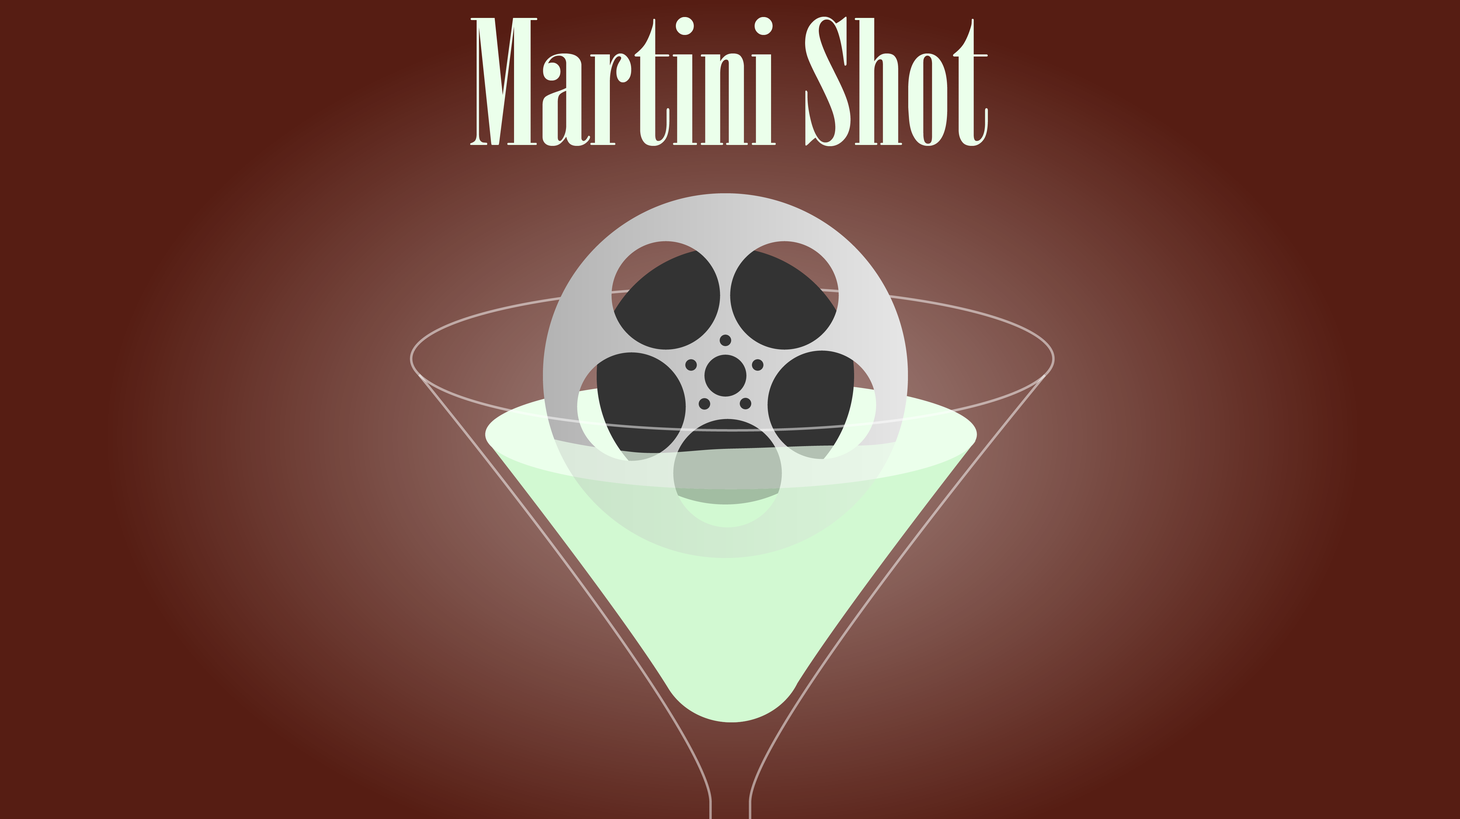 This is Rob Long, and on today's Martini Shot I talk about the difference between TV shows set in the past, and TV shows from the past. One is nostalgia, the other is desperation.